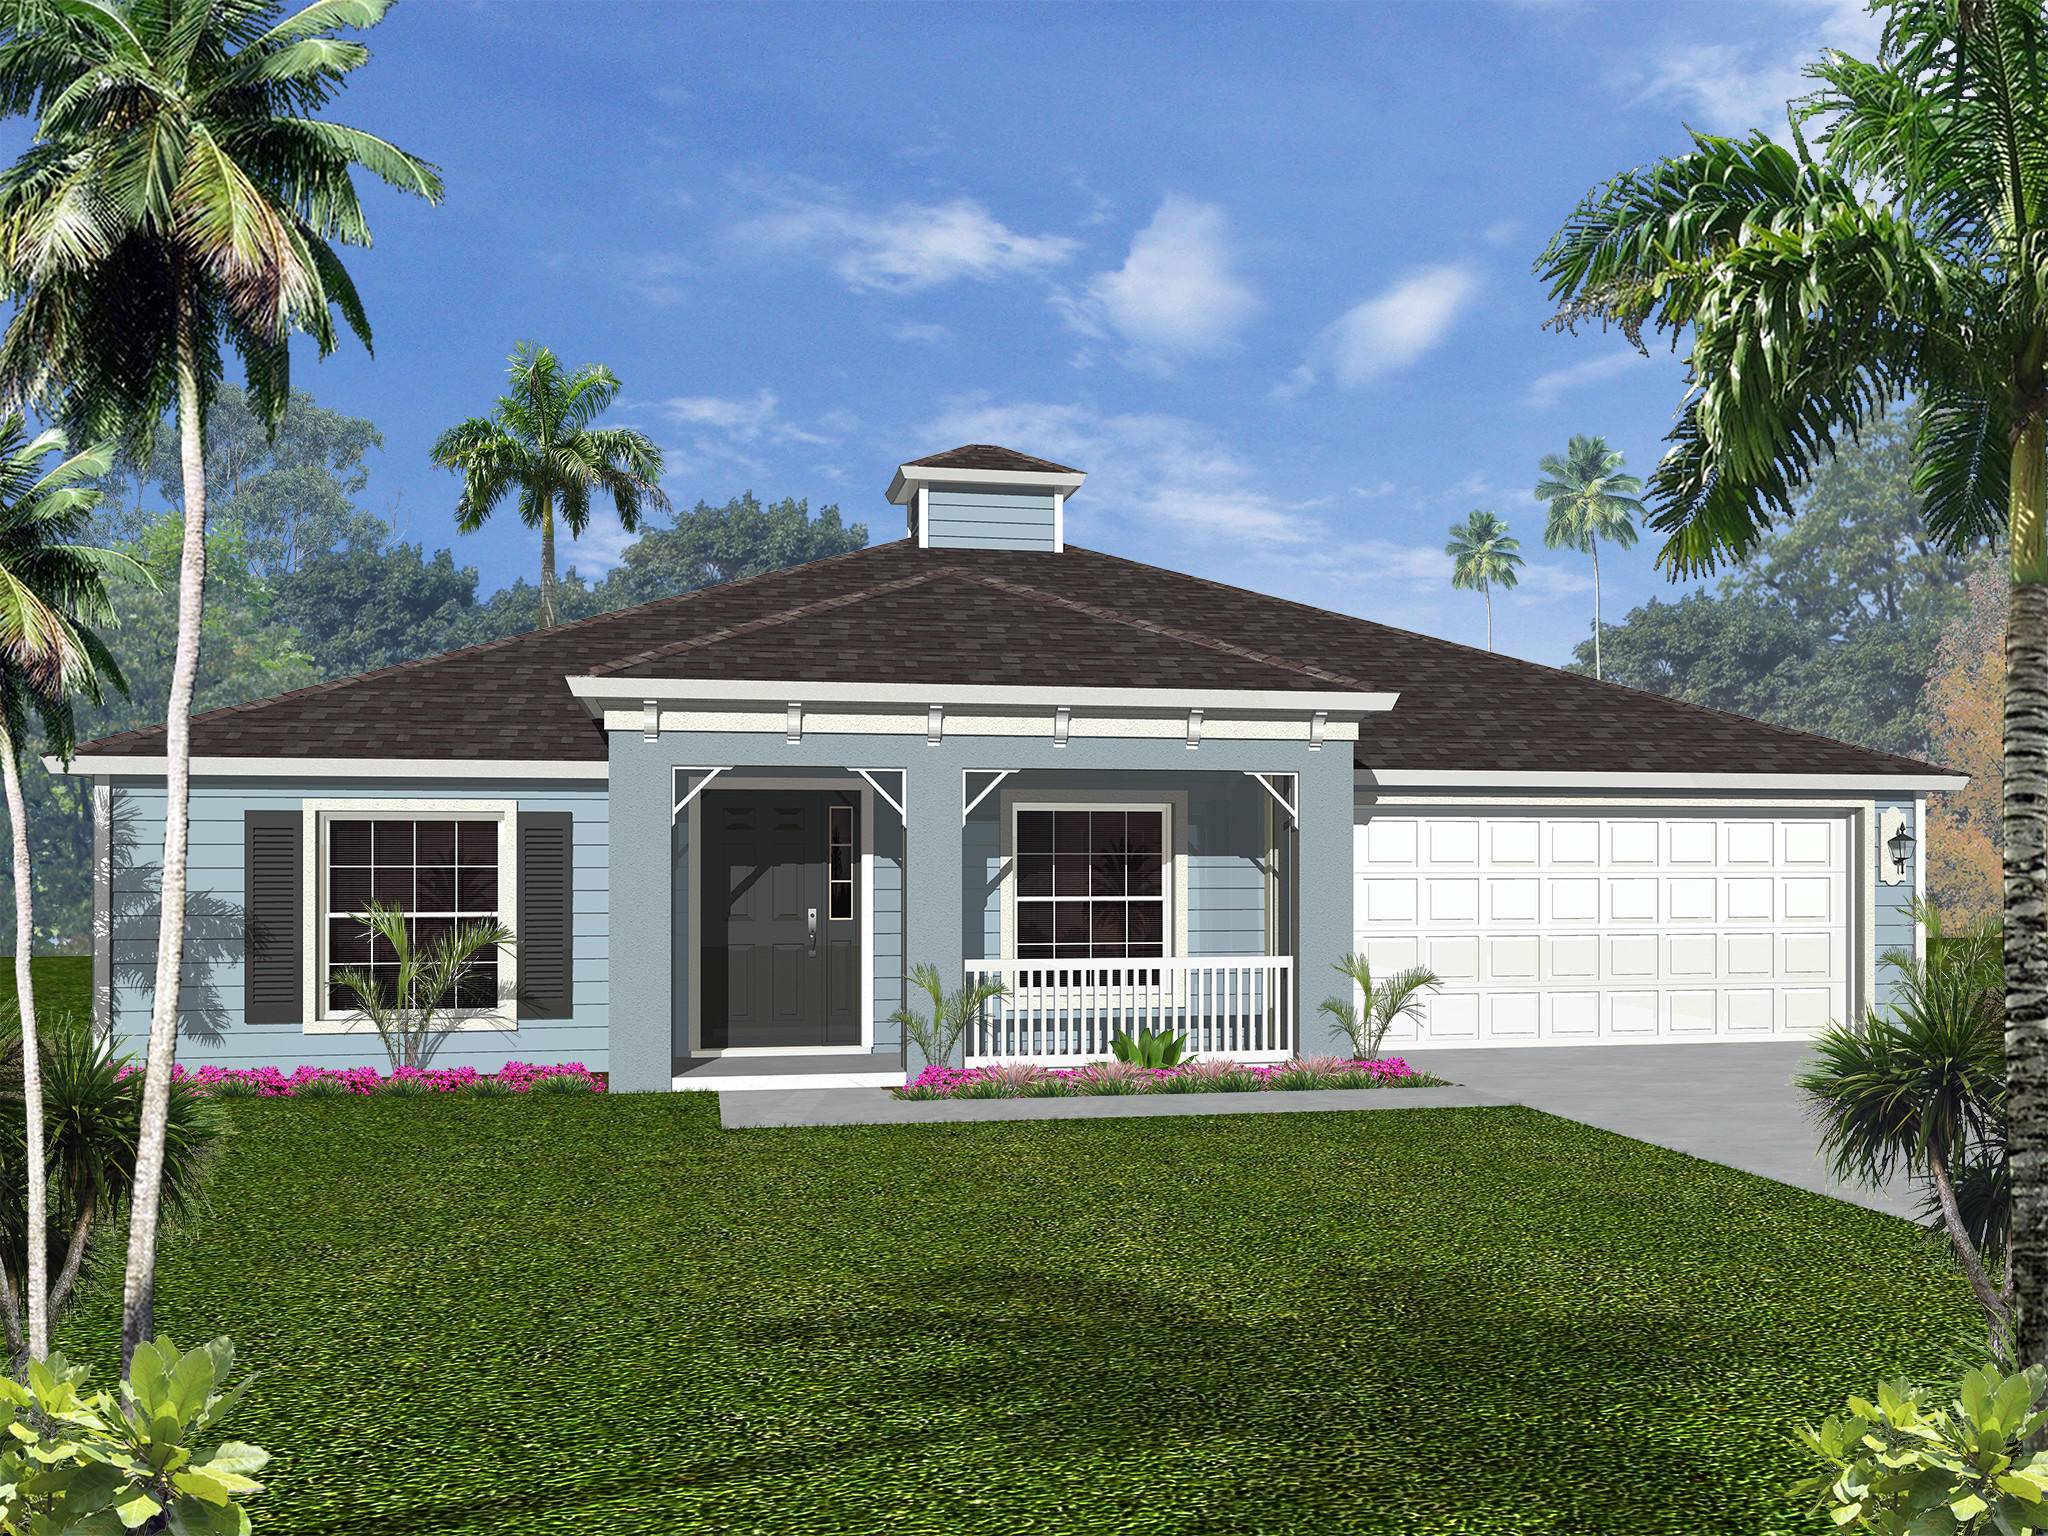 885 Squirrel Port Saint Lucie 34953